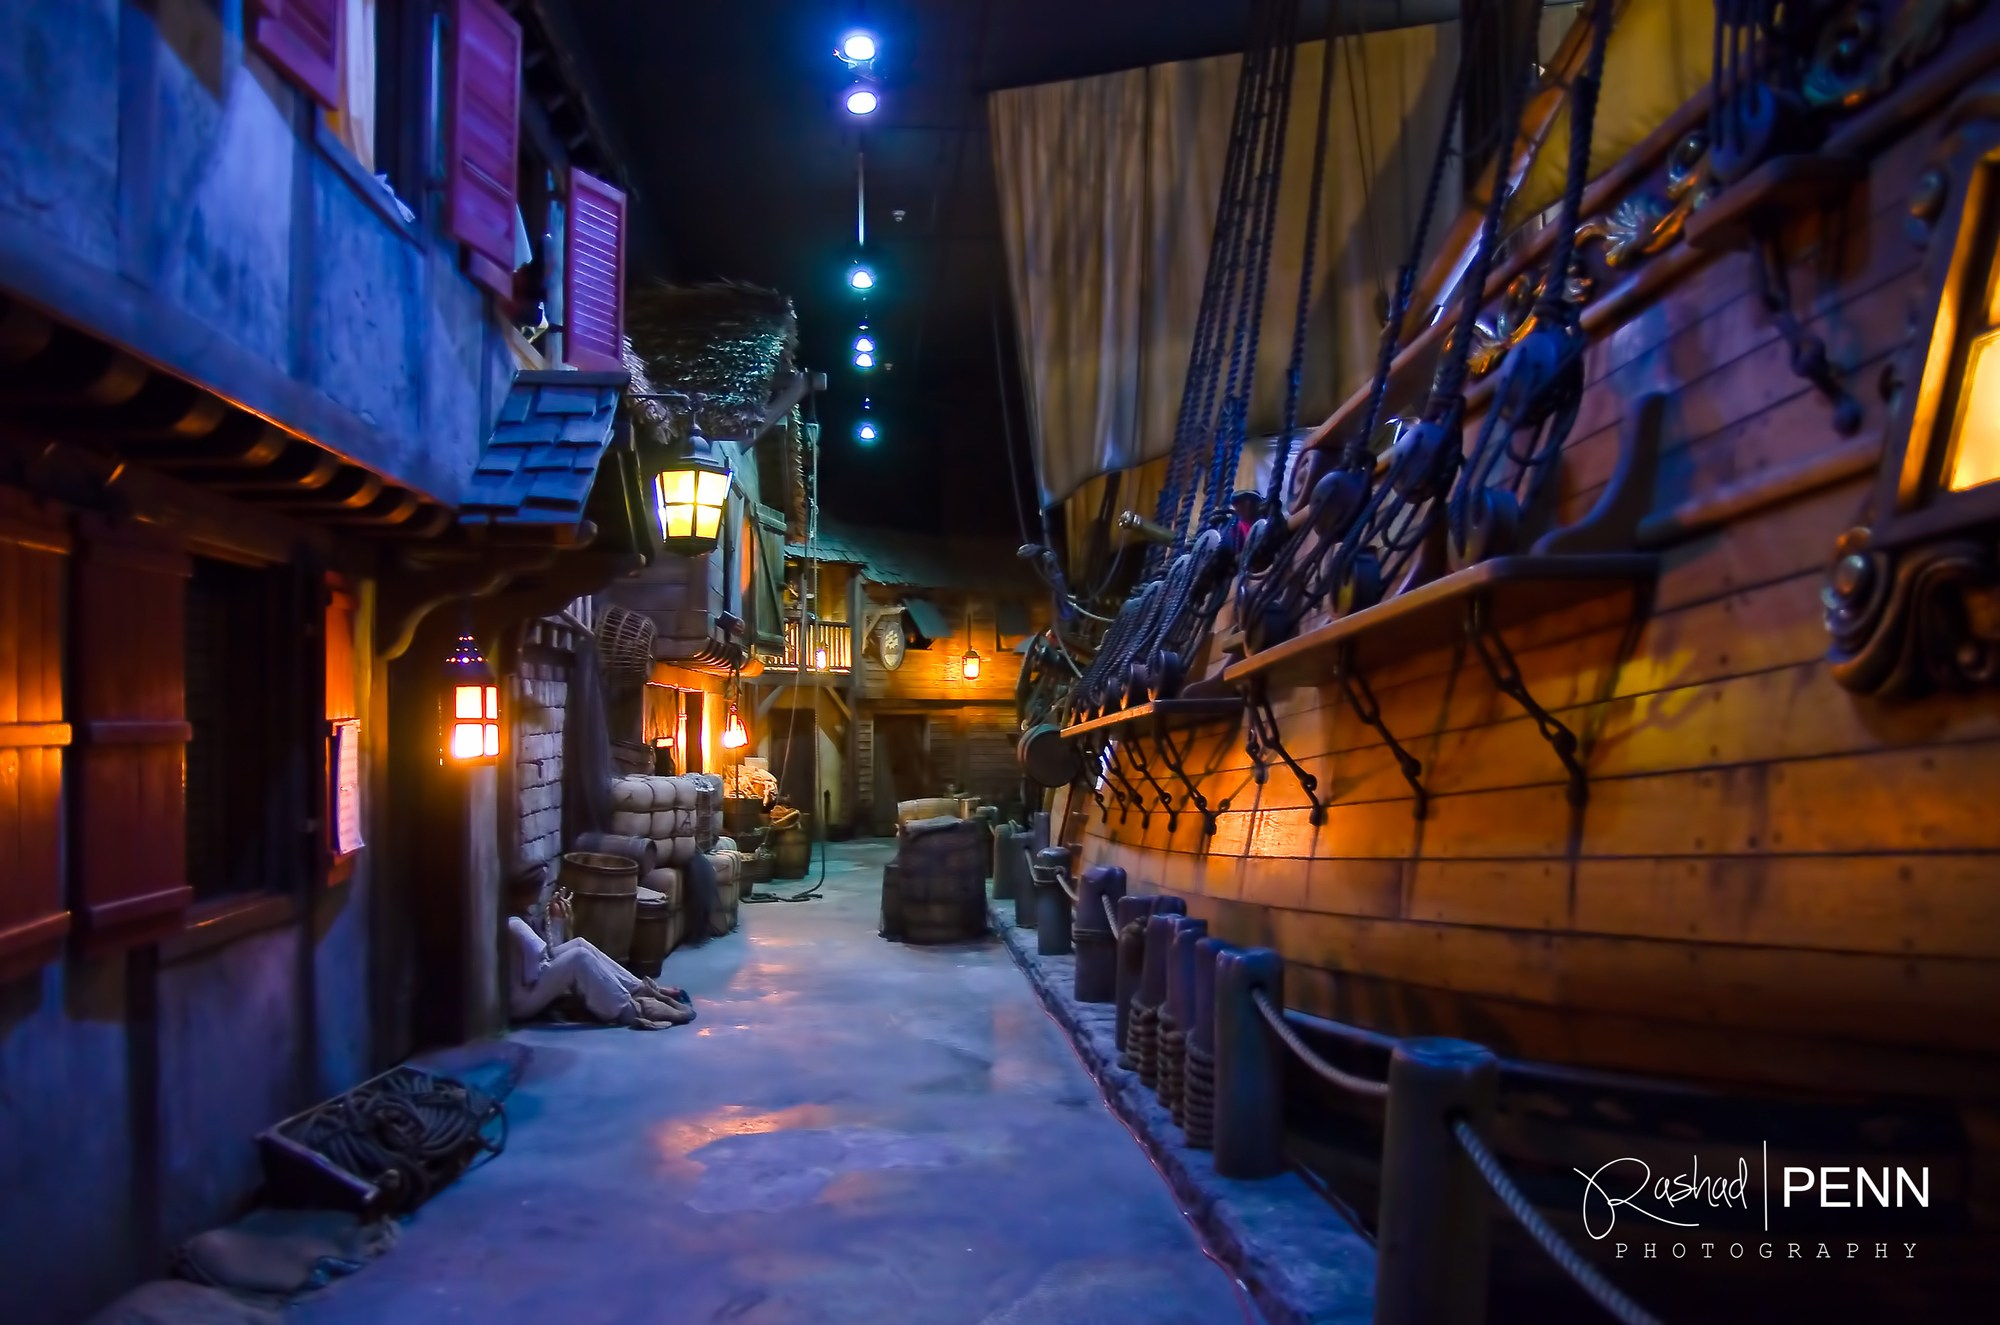 Pirates of Nassau Nassau, What to do in Nassau- Pirates of Nassau | THE BAHAMIAN PHOTOGRAPHER